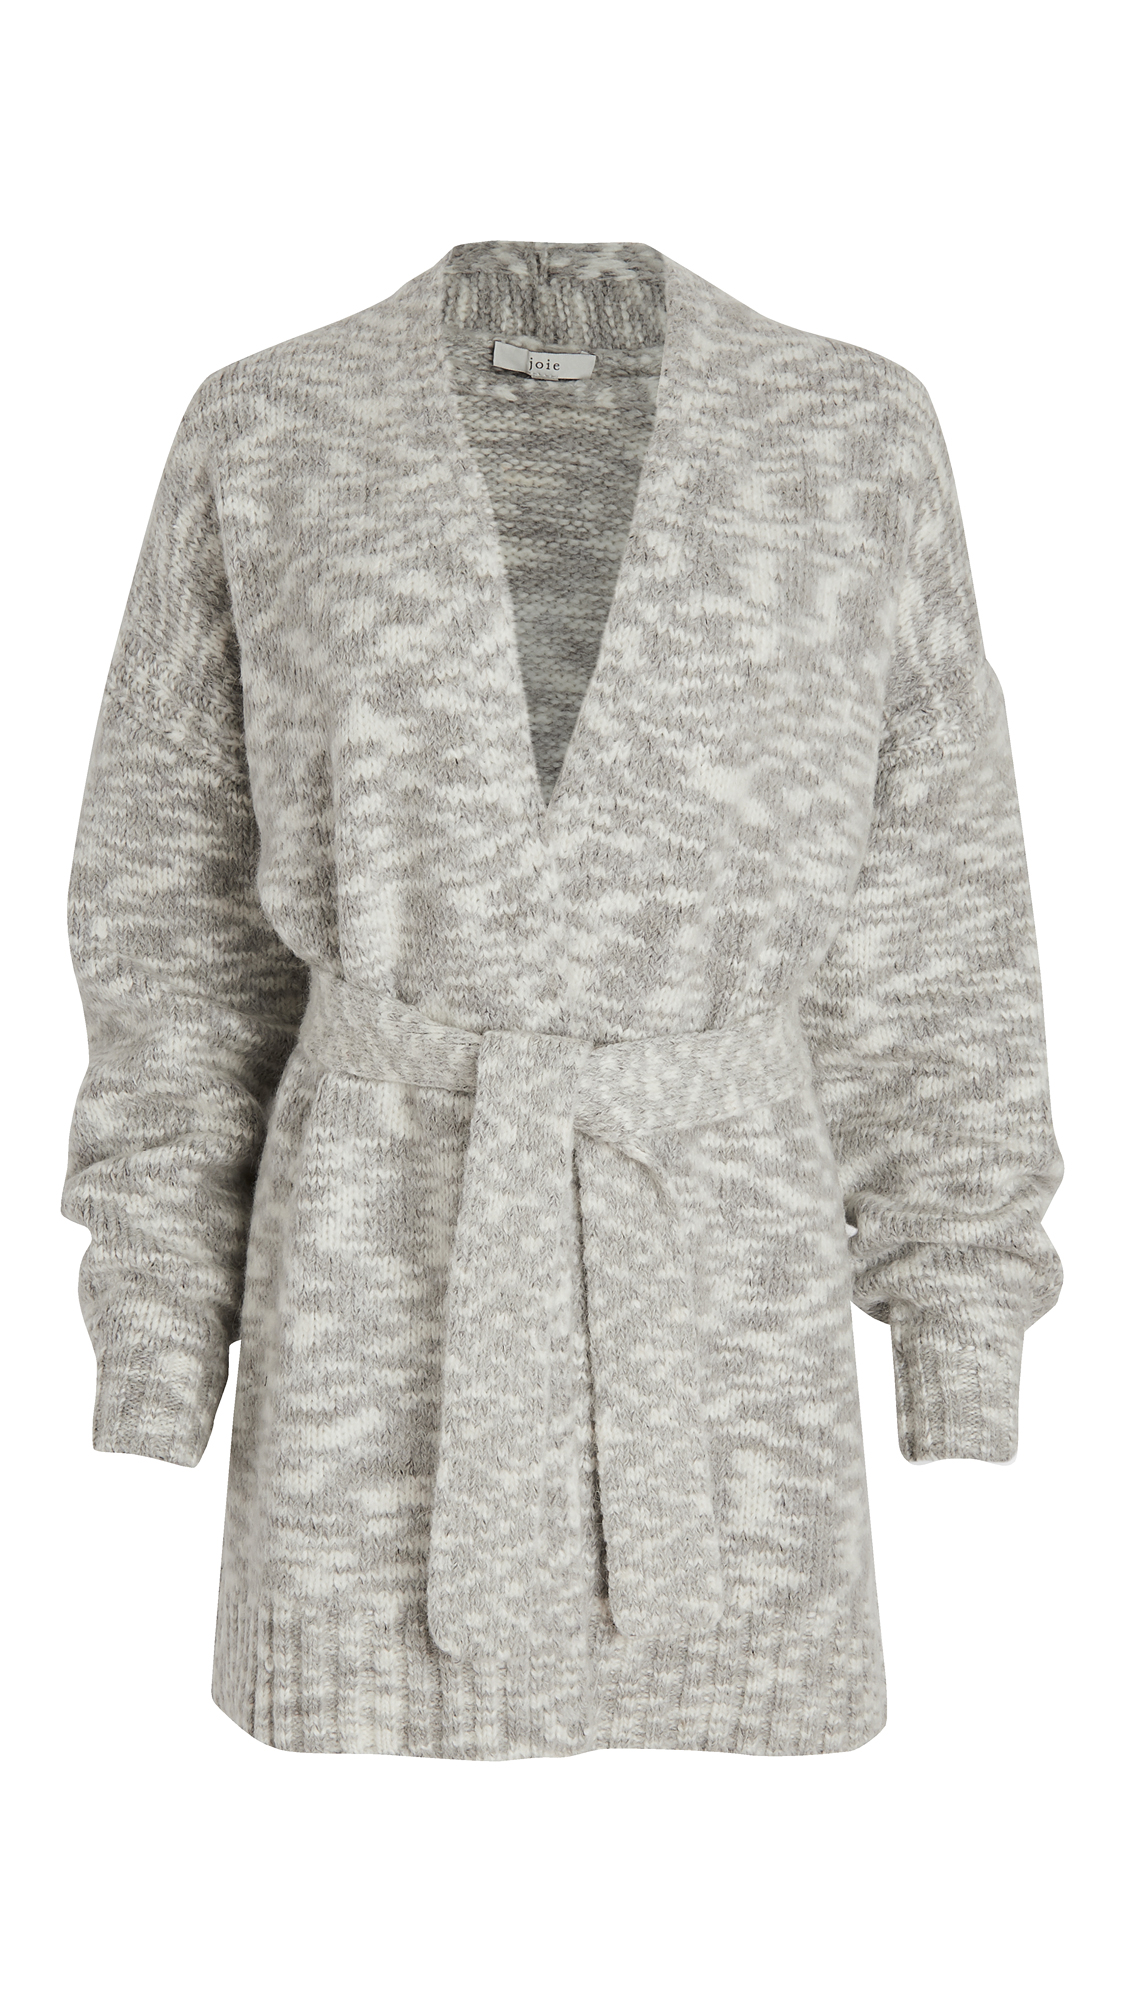 Joie Lavell Cardigan